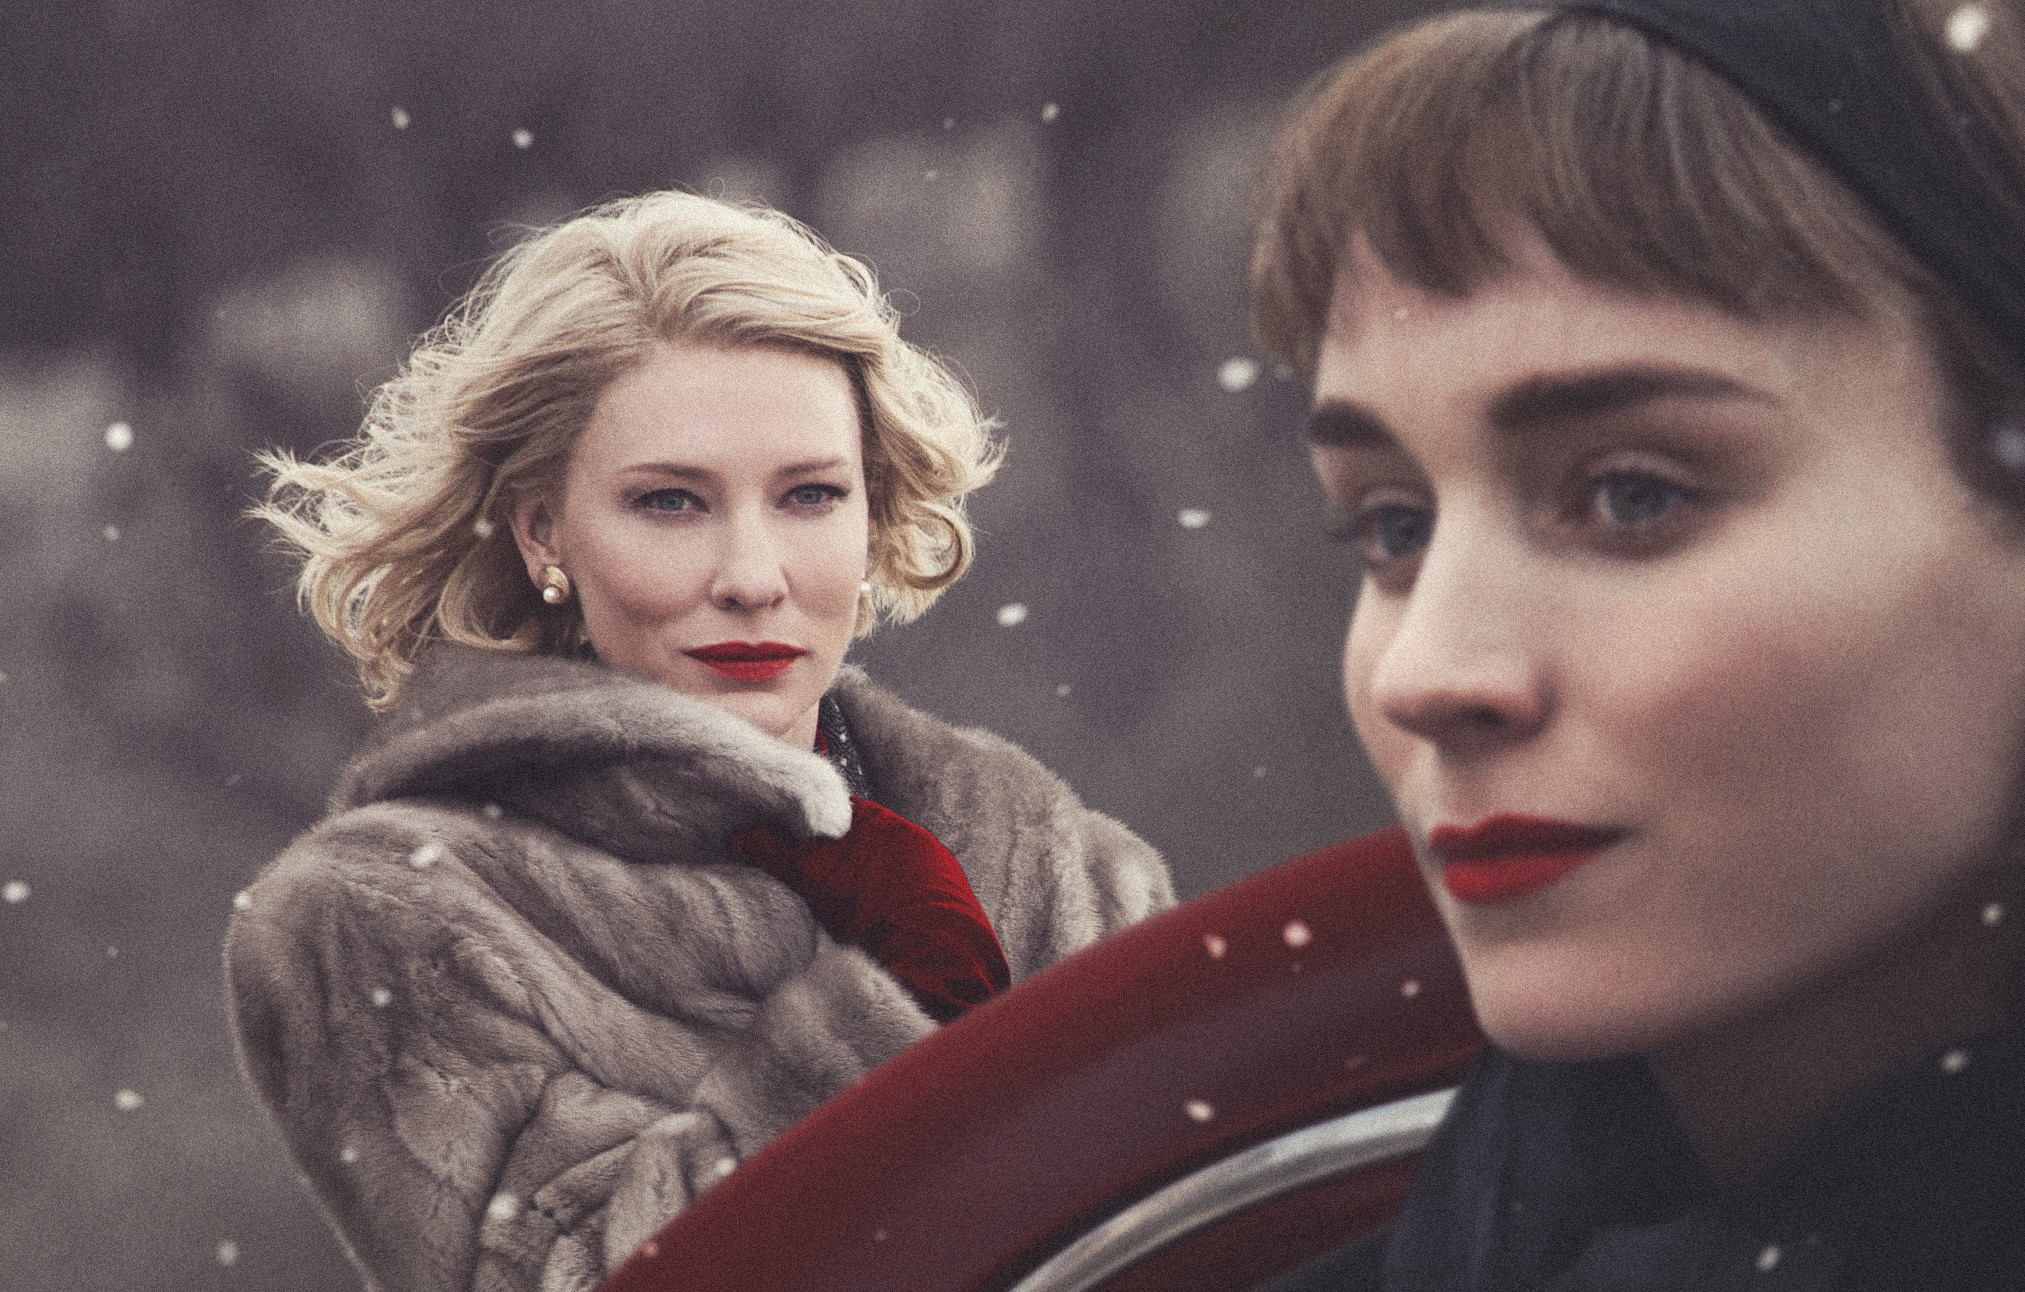 Todd Haynes Use Of The Point Of View In Carol By John Cinenation Medium